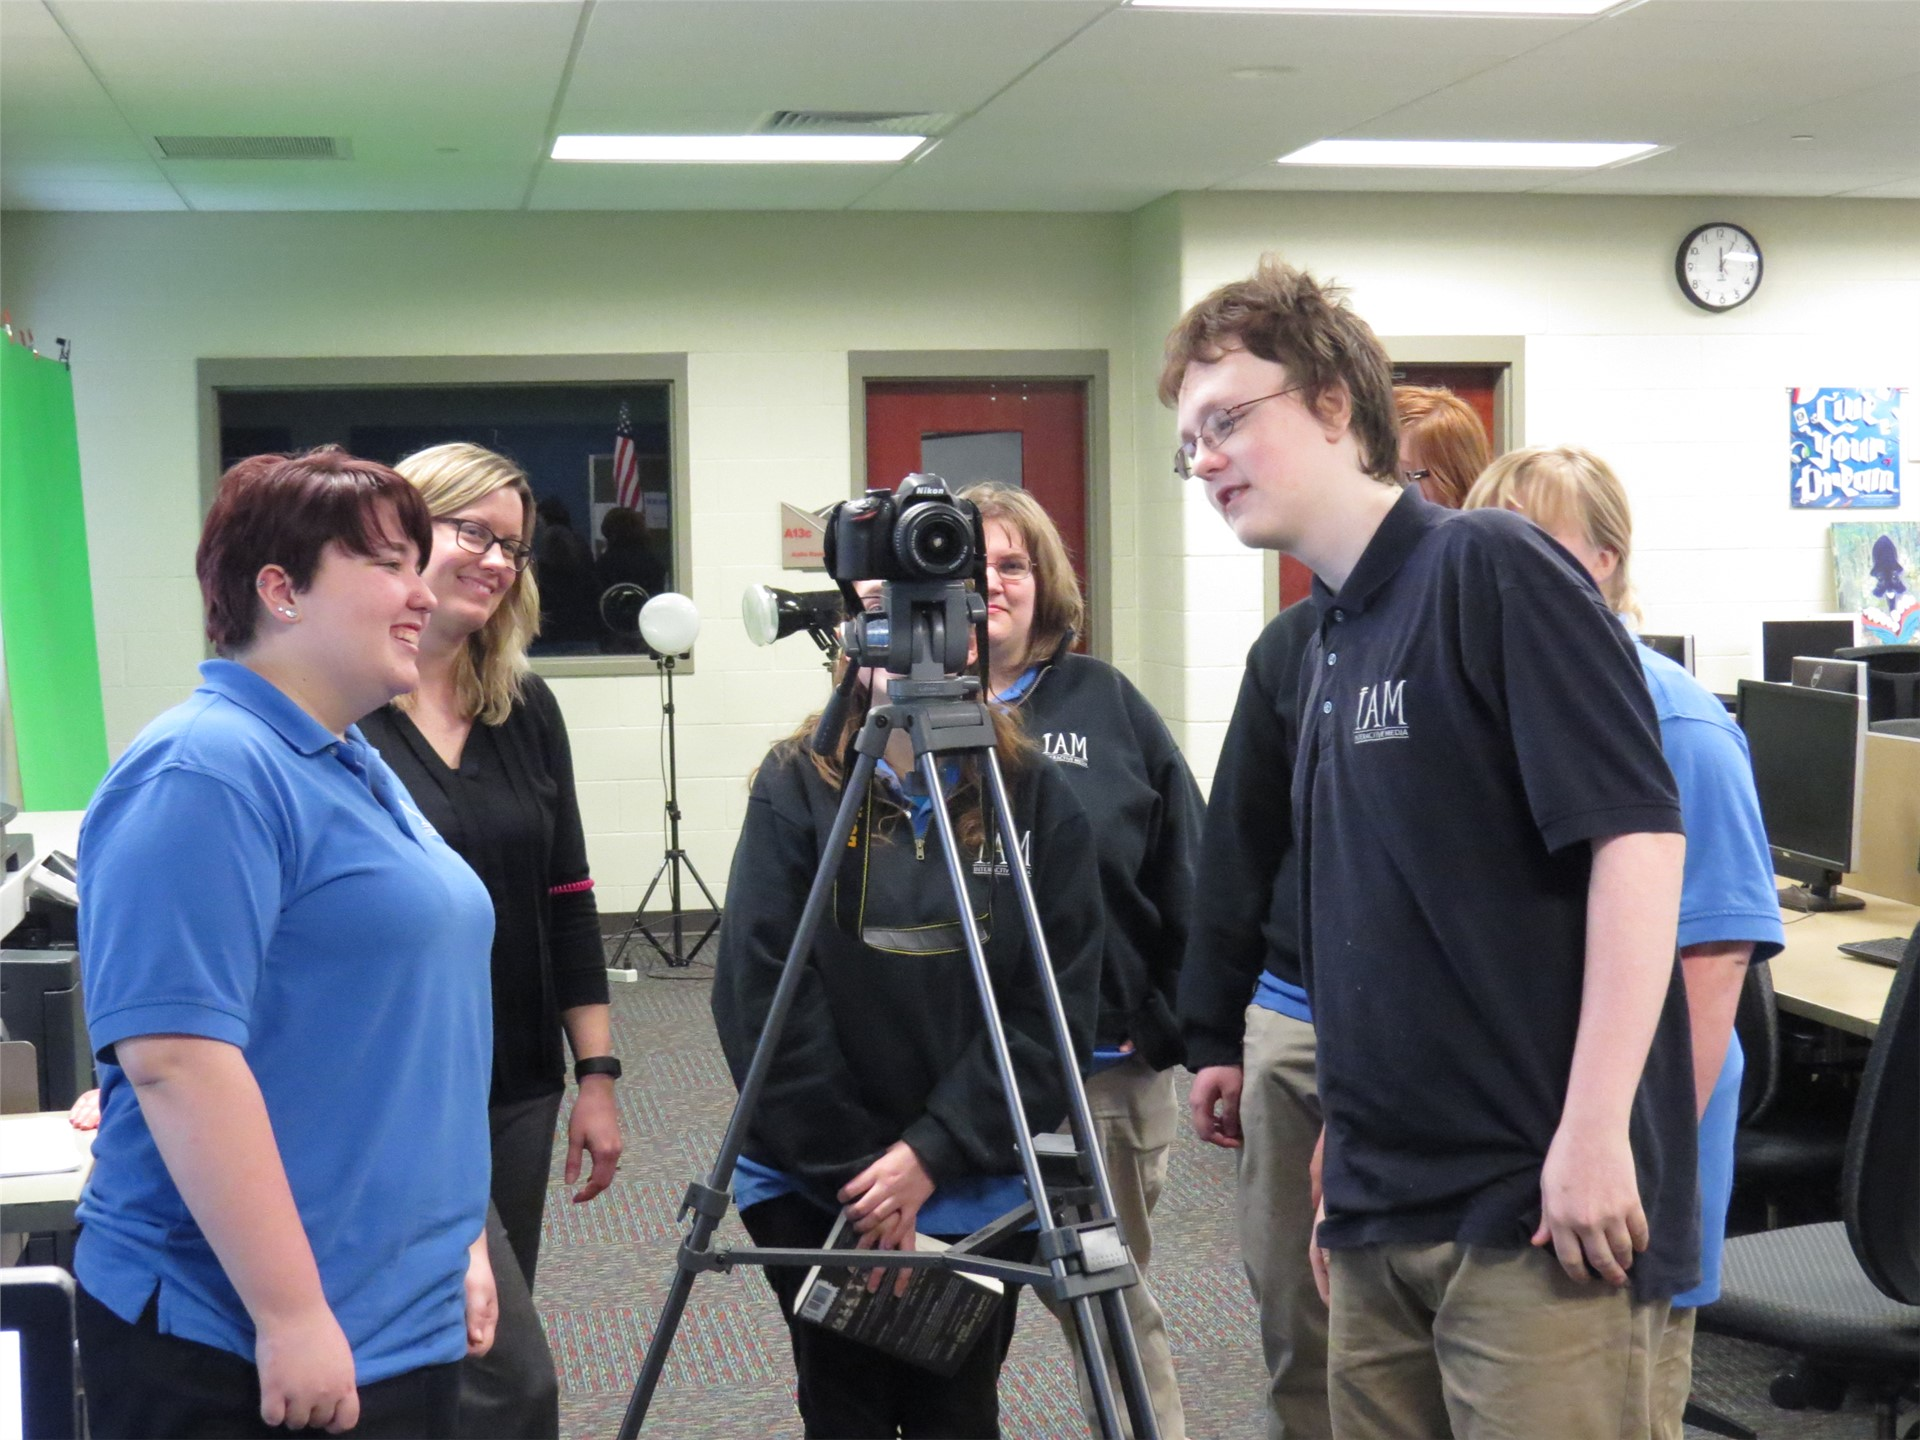 Male & female Interactive Media students standing around a tripod and camera